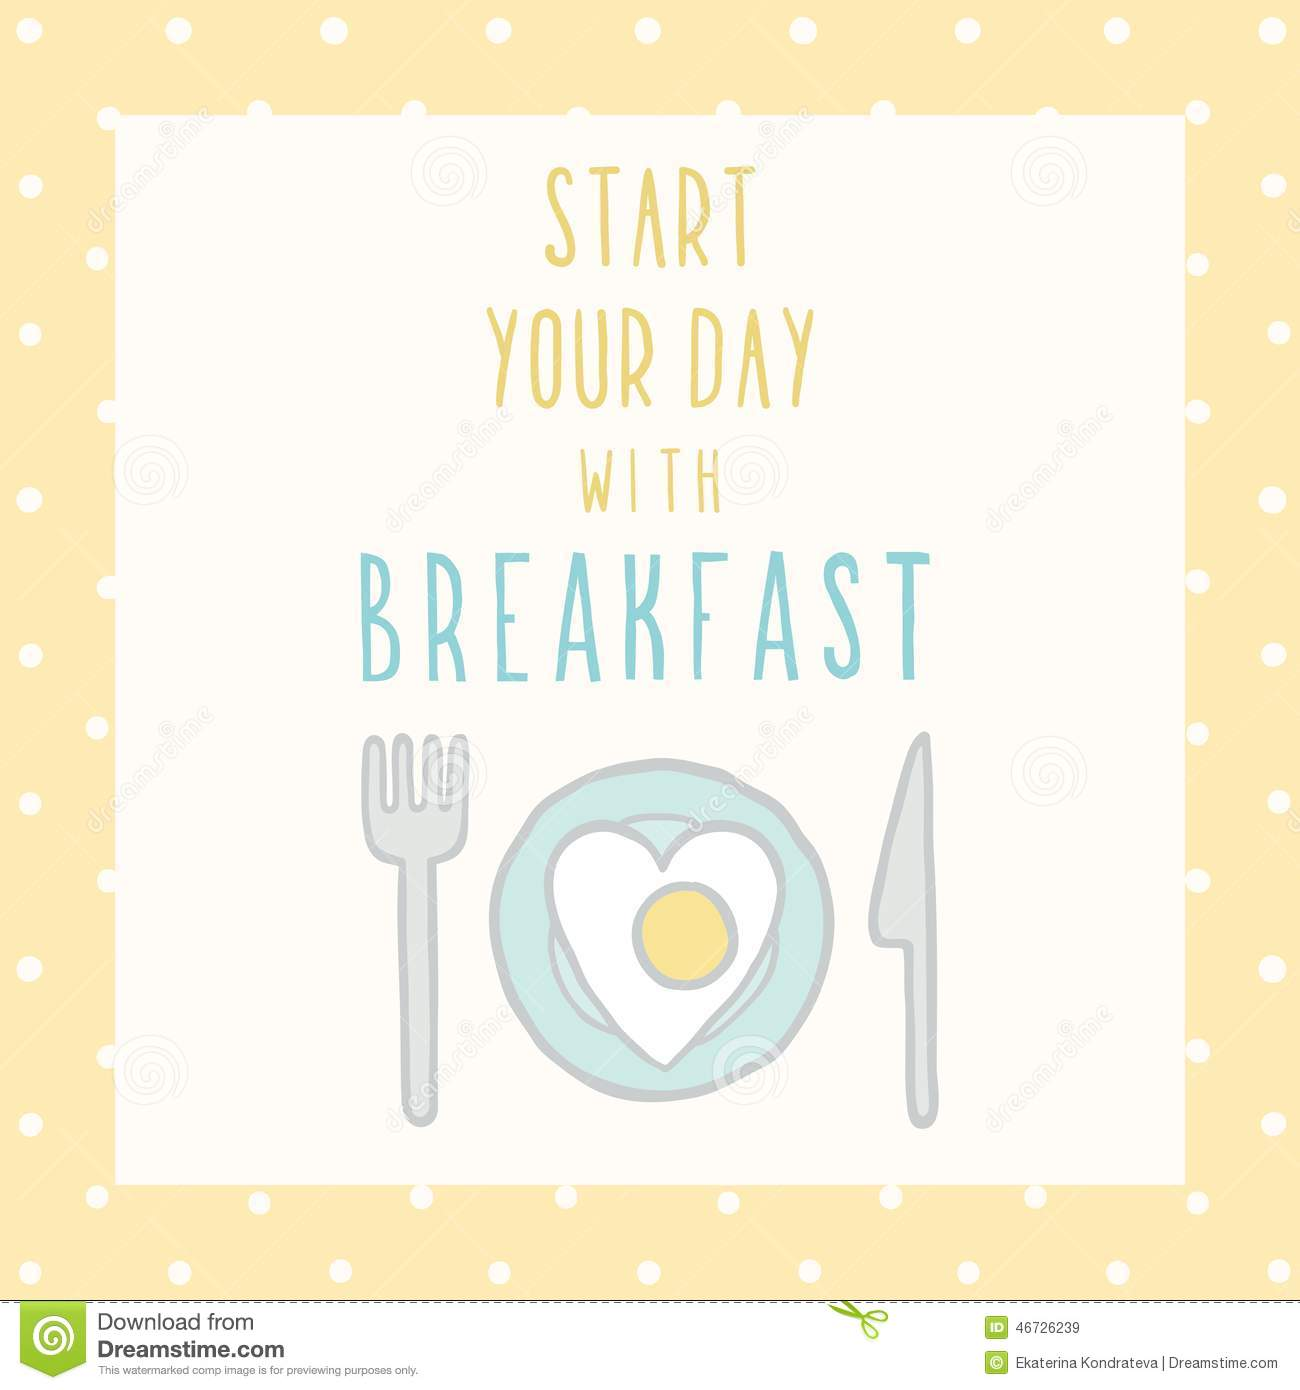 Start Your Day With Breakfast Card. Stock Vector - Image: 46726239